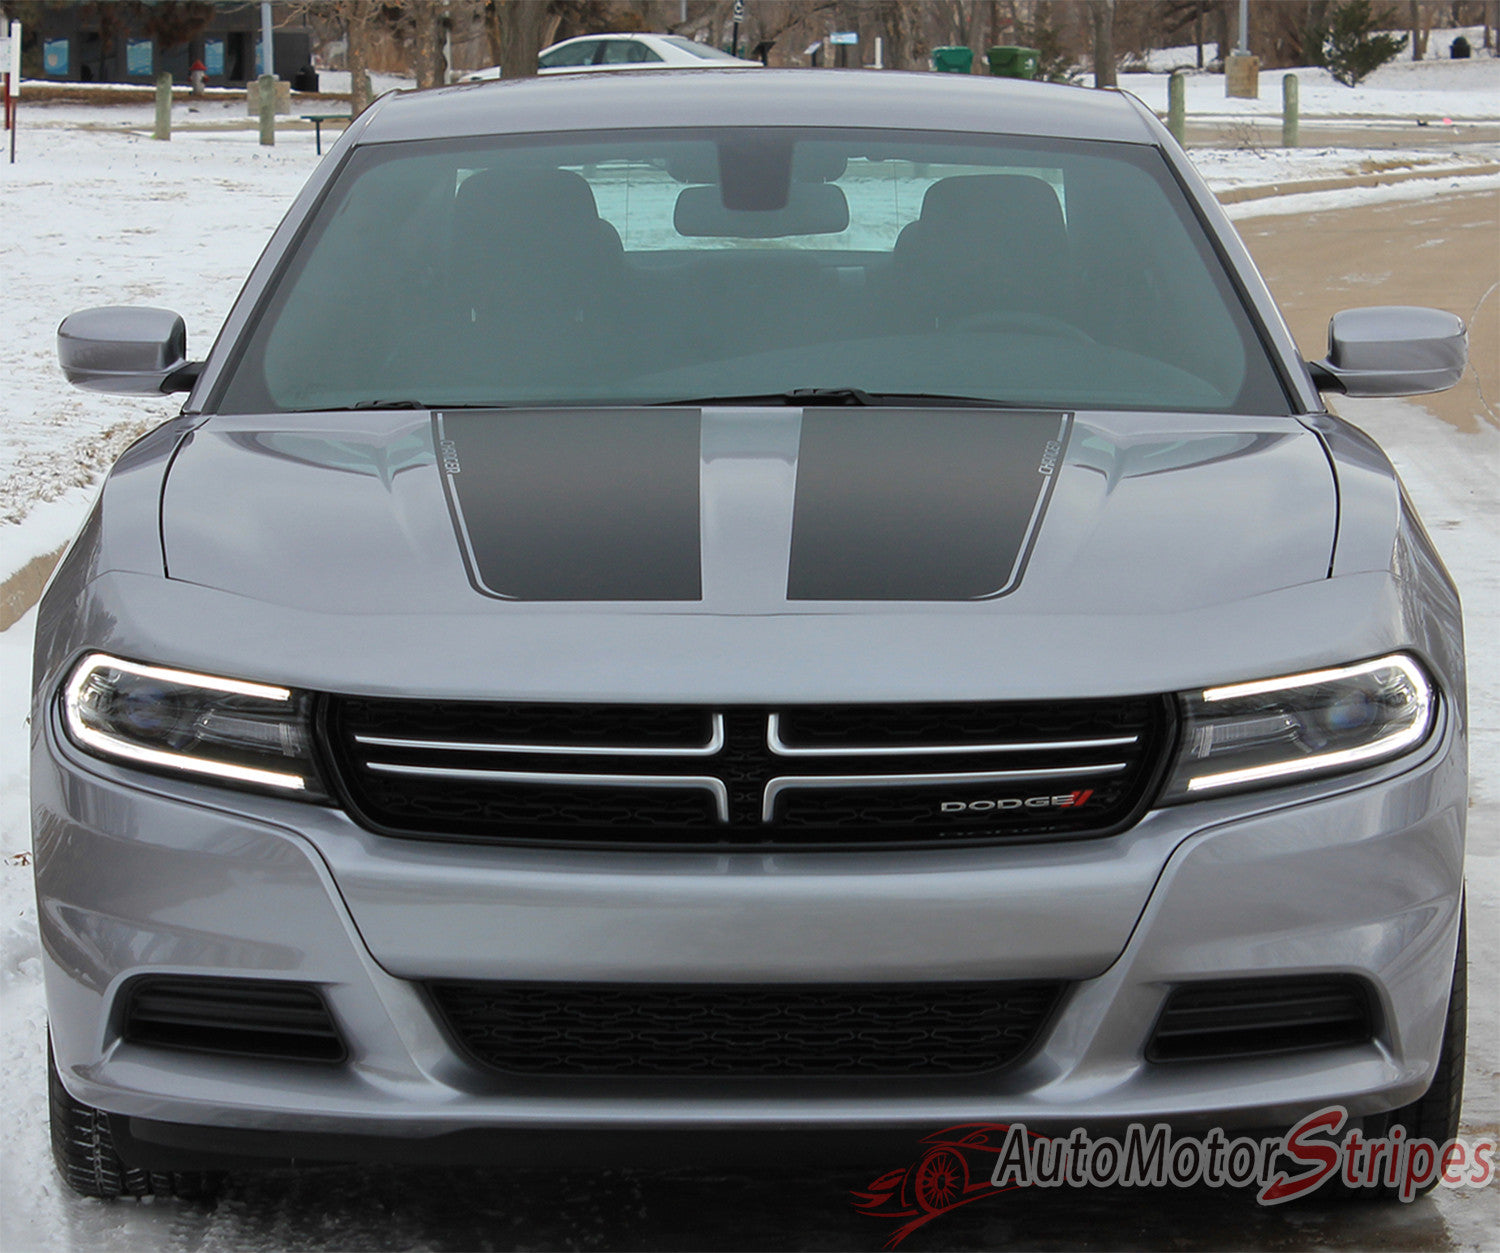 Dodge dodge charger with wing : 2015-2018 Dodge Charger Split Hood Stripes Vinyl Graphic Decals 3M ...